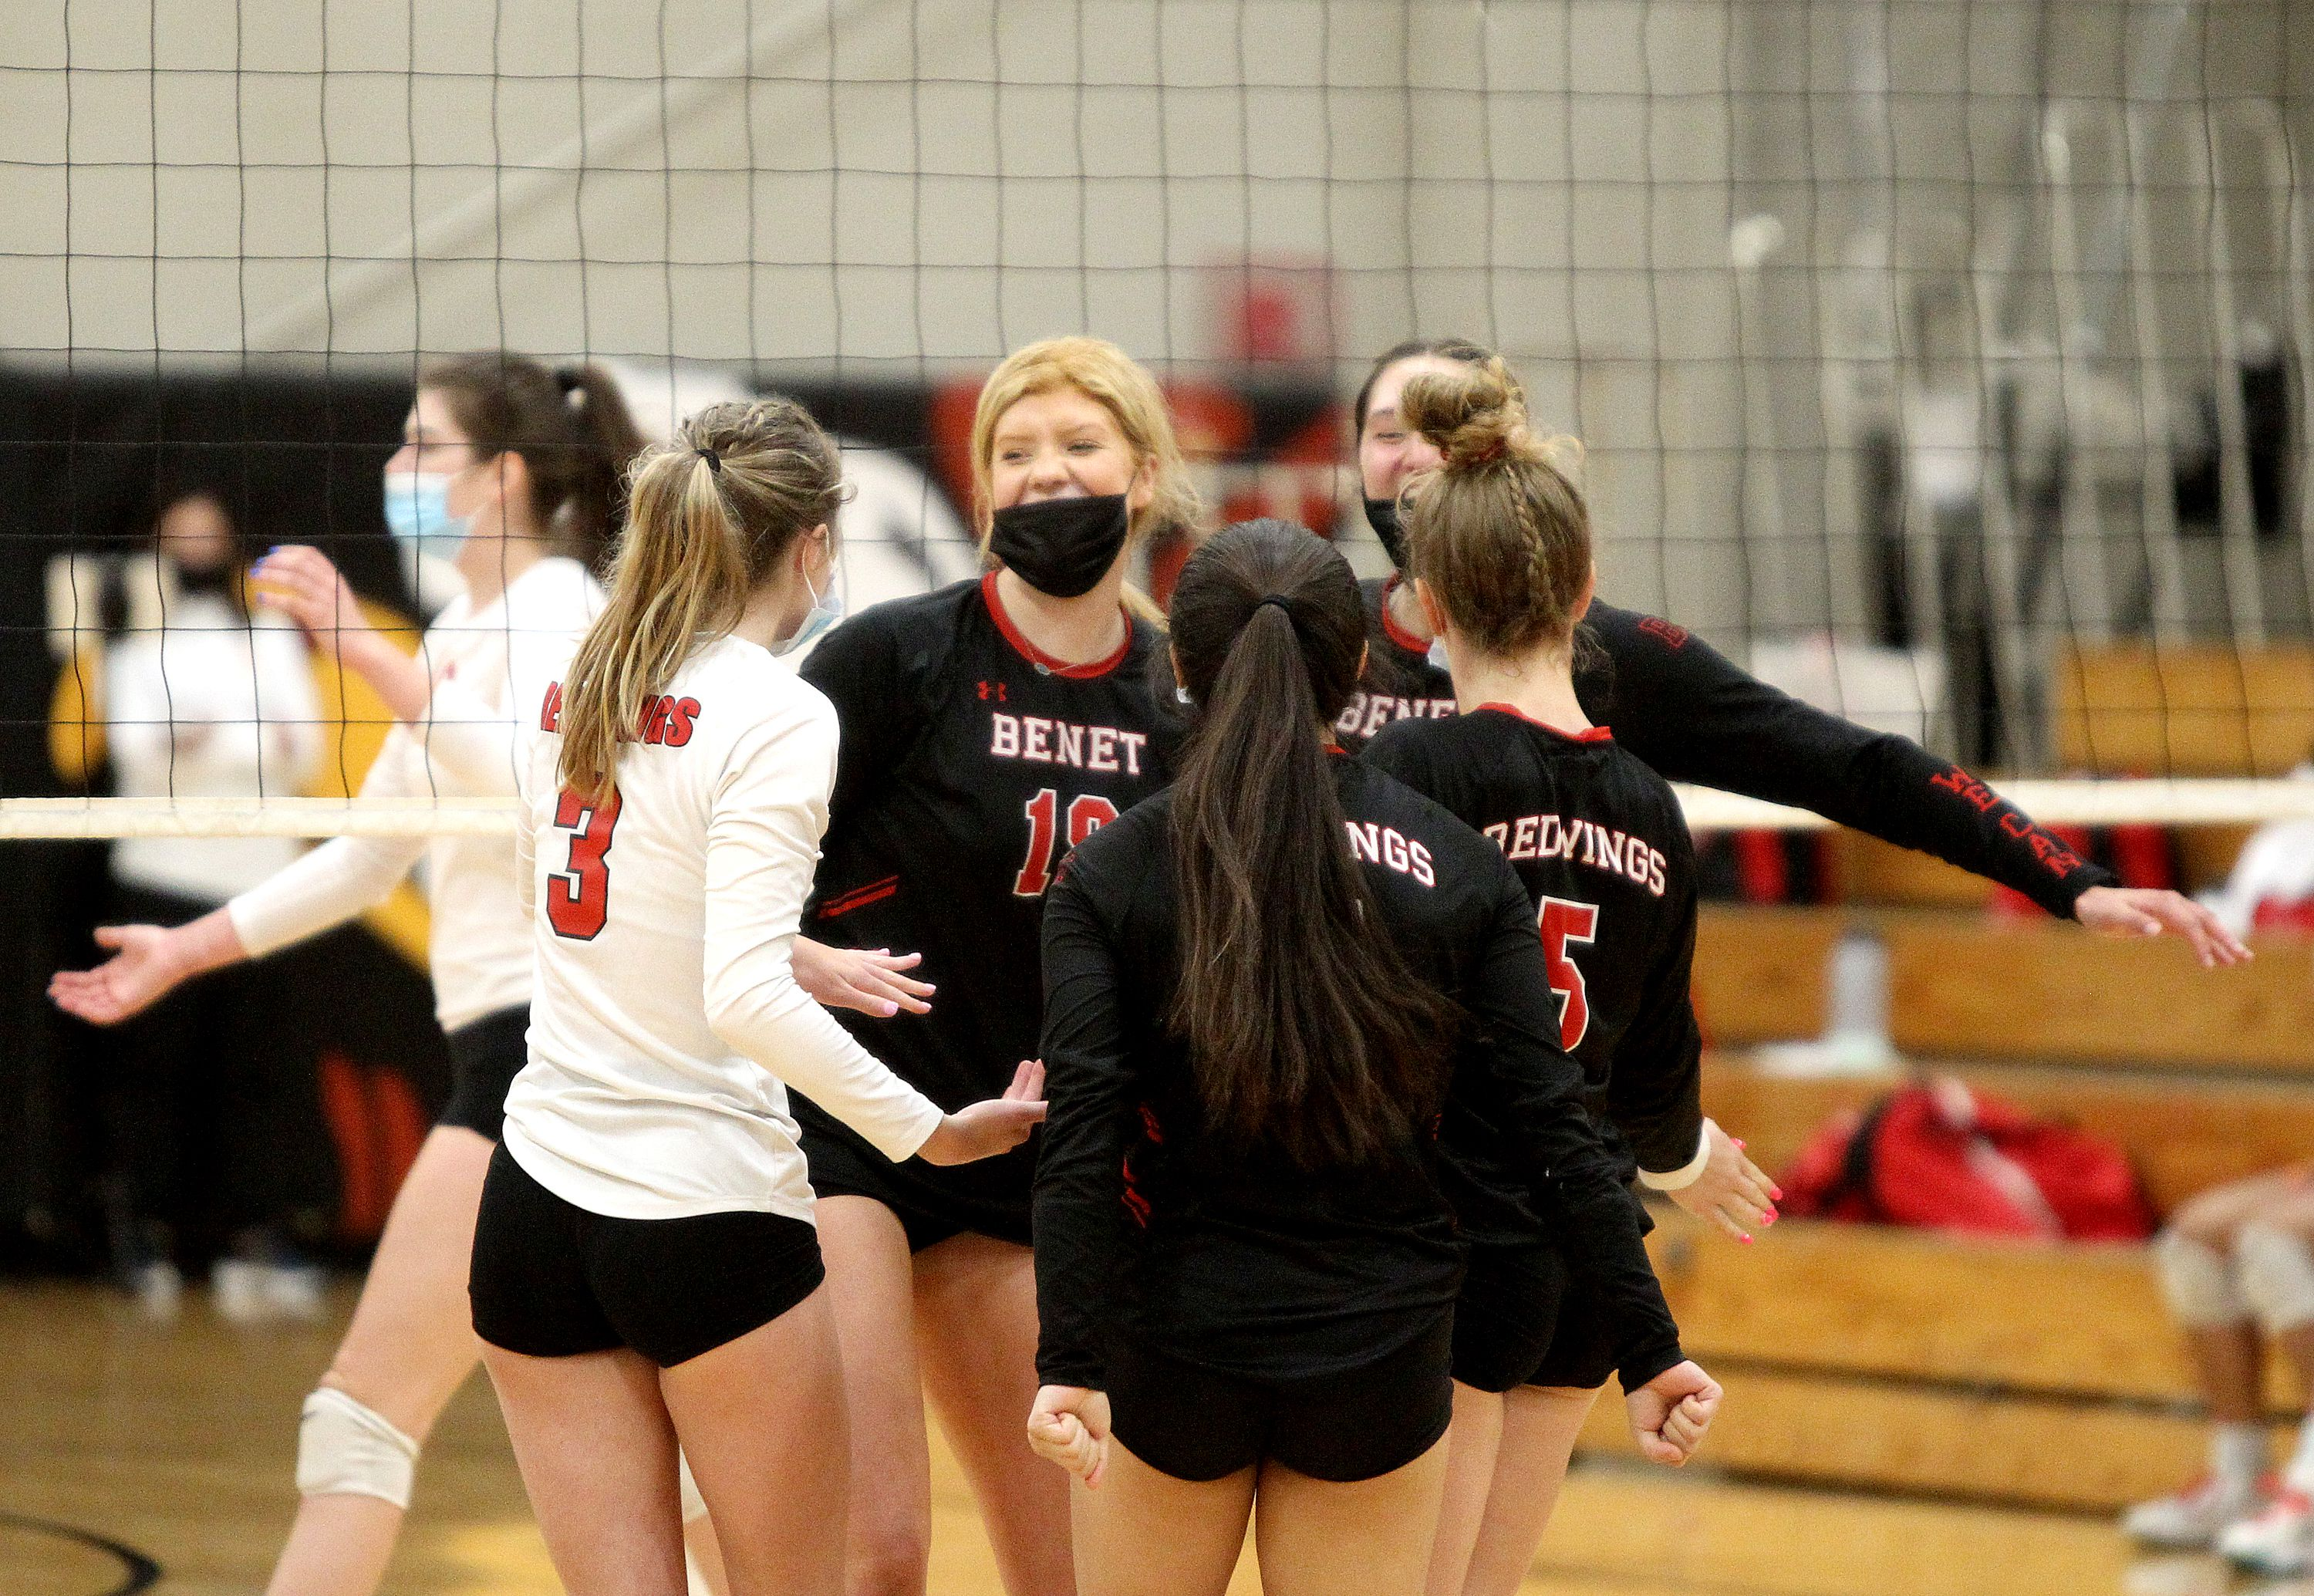 Benet's Rachel Muisenga (center) celebrates a point with her team during the first set of their three-set win over Mother McAuley on Wednesday, April 7, 2021 in Lisle.